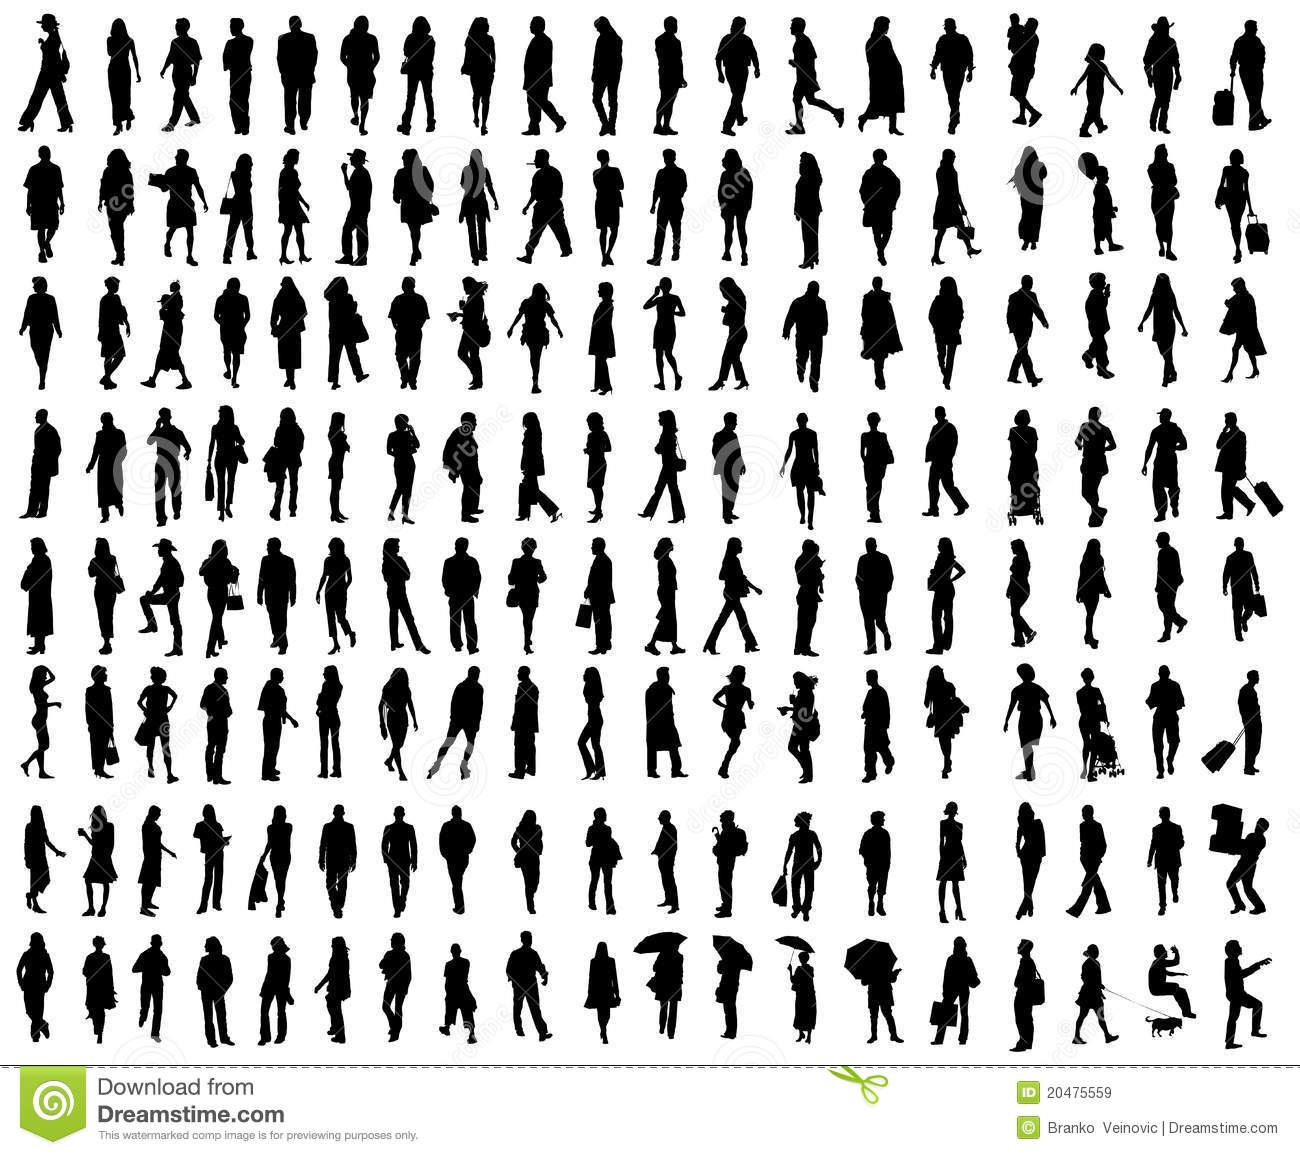 Royalty Free Stock Images: Vector people silhouettes . Image: 20475559